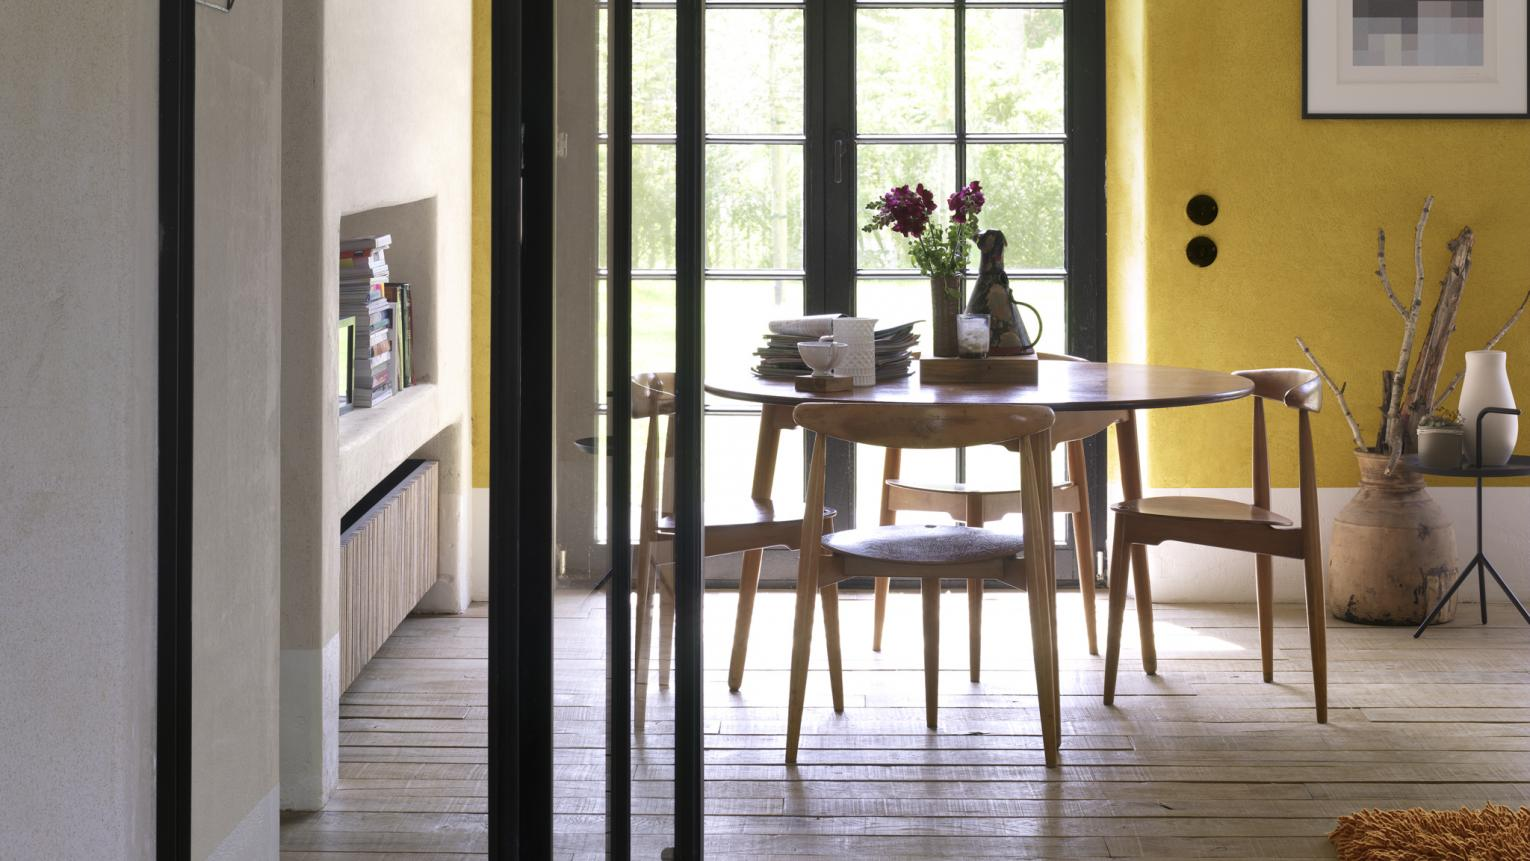 For a dining space that's full of cheer, look to warm yellow.